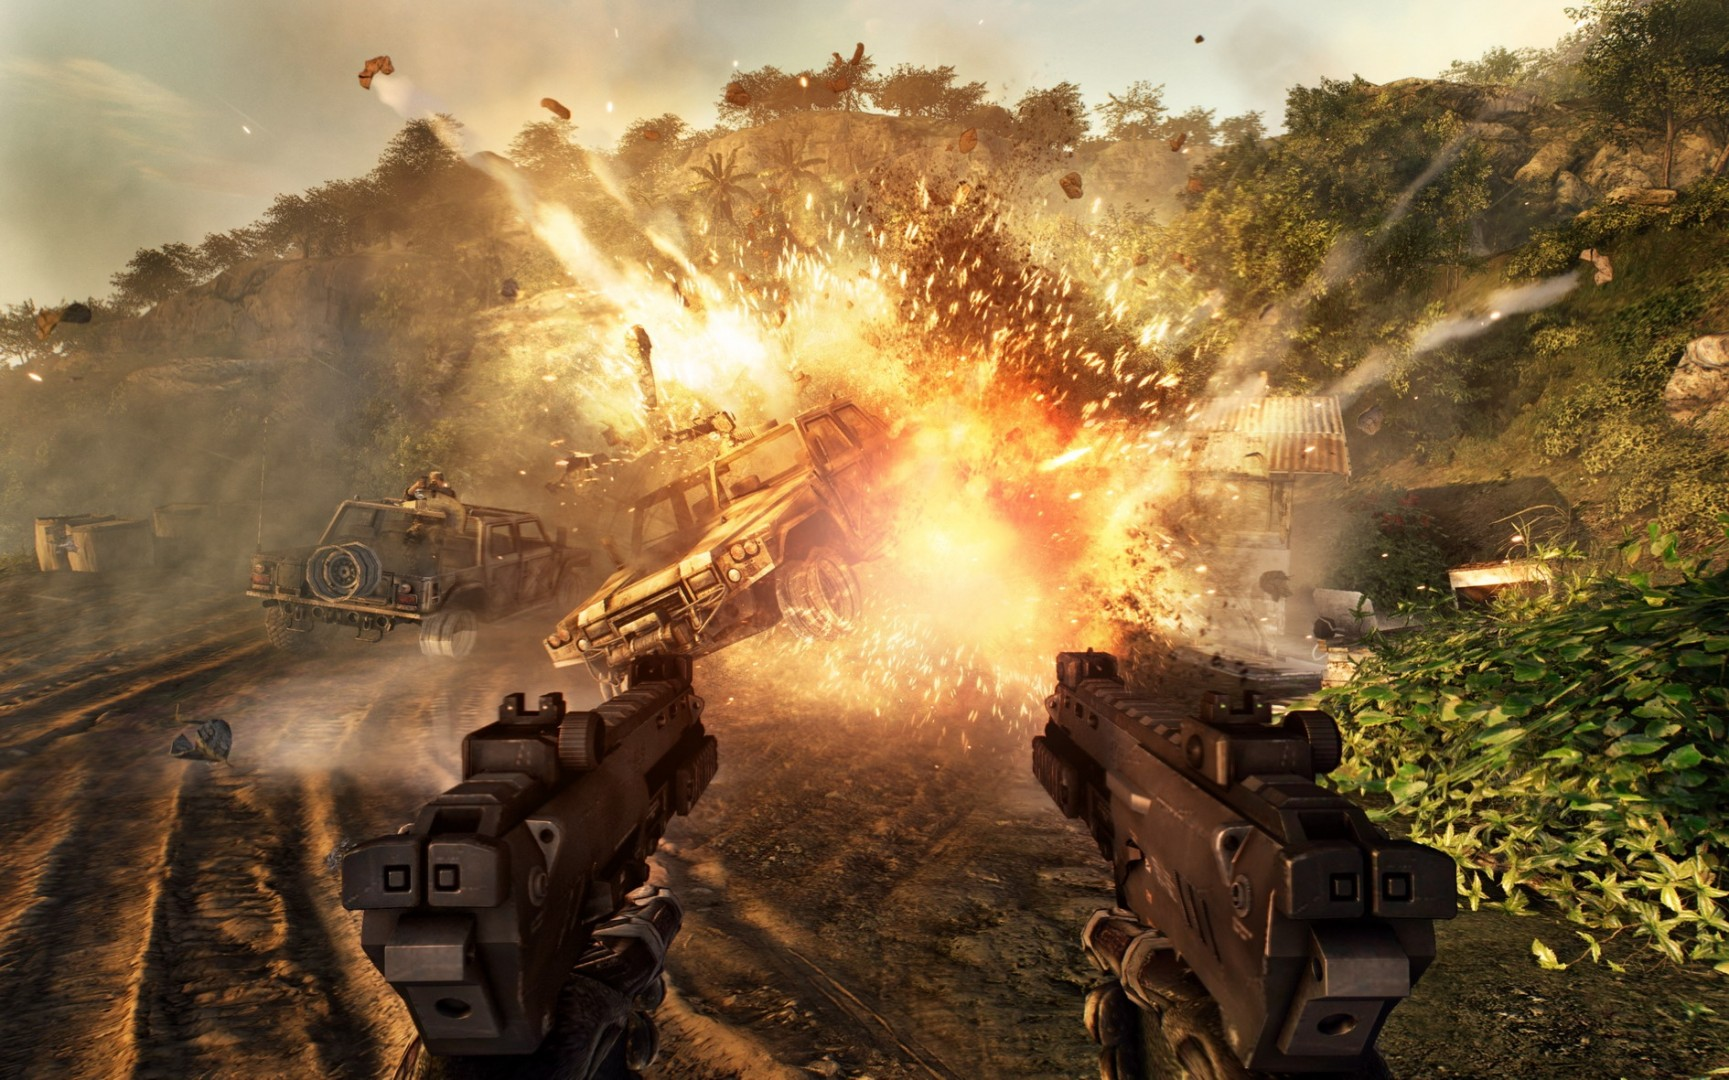 CRYSIS WARHEAD PATCH V1.1 is available forimmediate download.